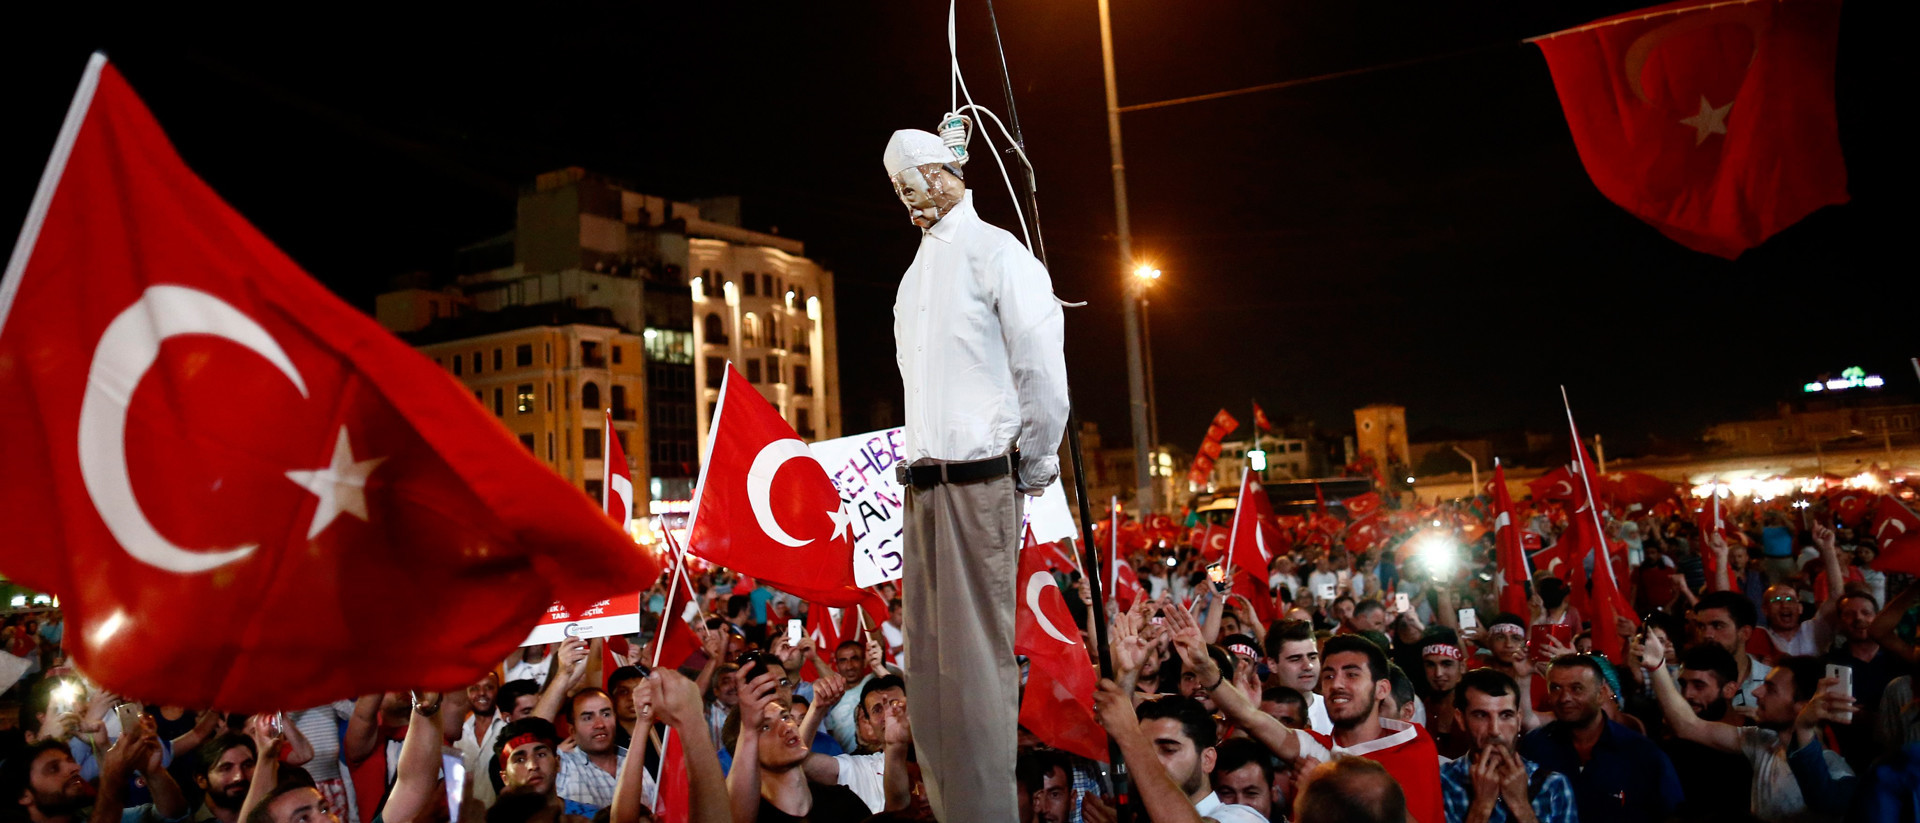 Pro-Erdogan supporters hold up an effigy of Islamic cleric Fethullah Gülen during a demonstration at Taksim Square in Istanbul on July 18, 2016. Photo by Ozan Kose / AFP